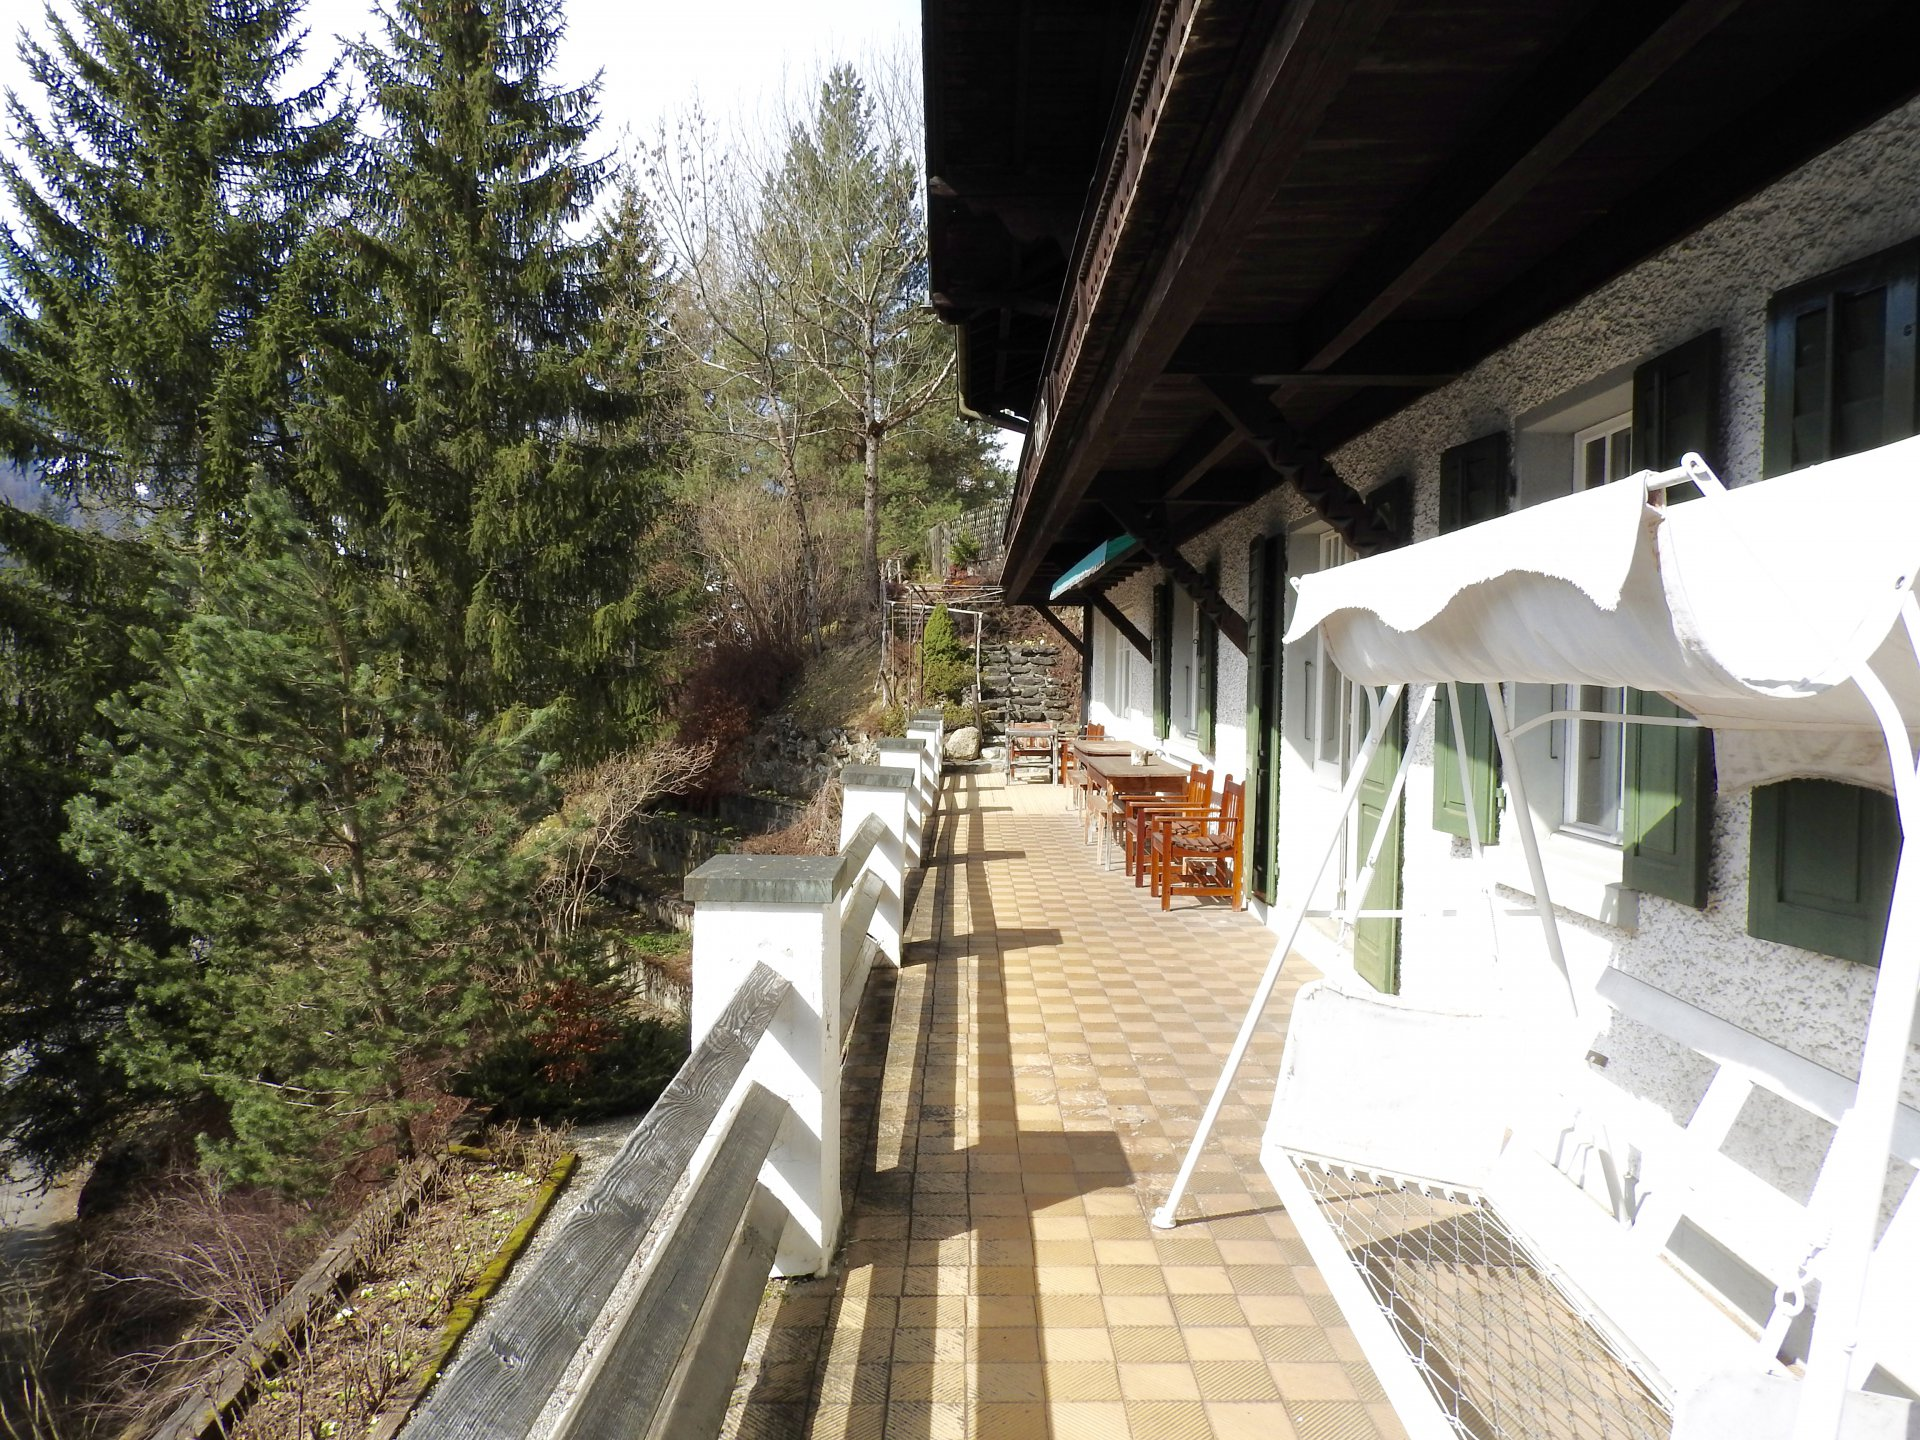 Ad sale chalet gstaad 3780 31 rooms john taylor for Swiss chalets for sale